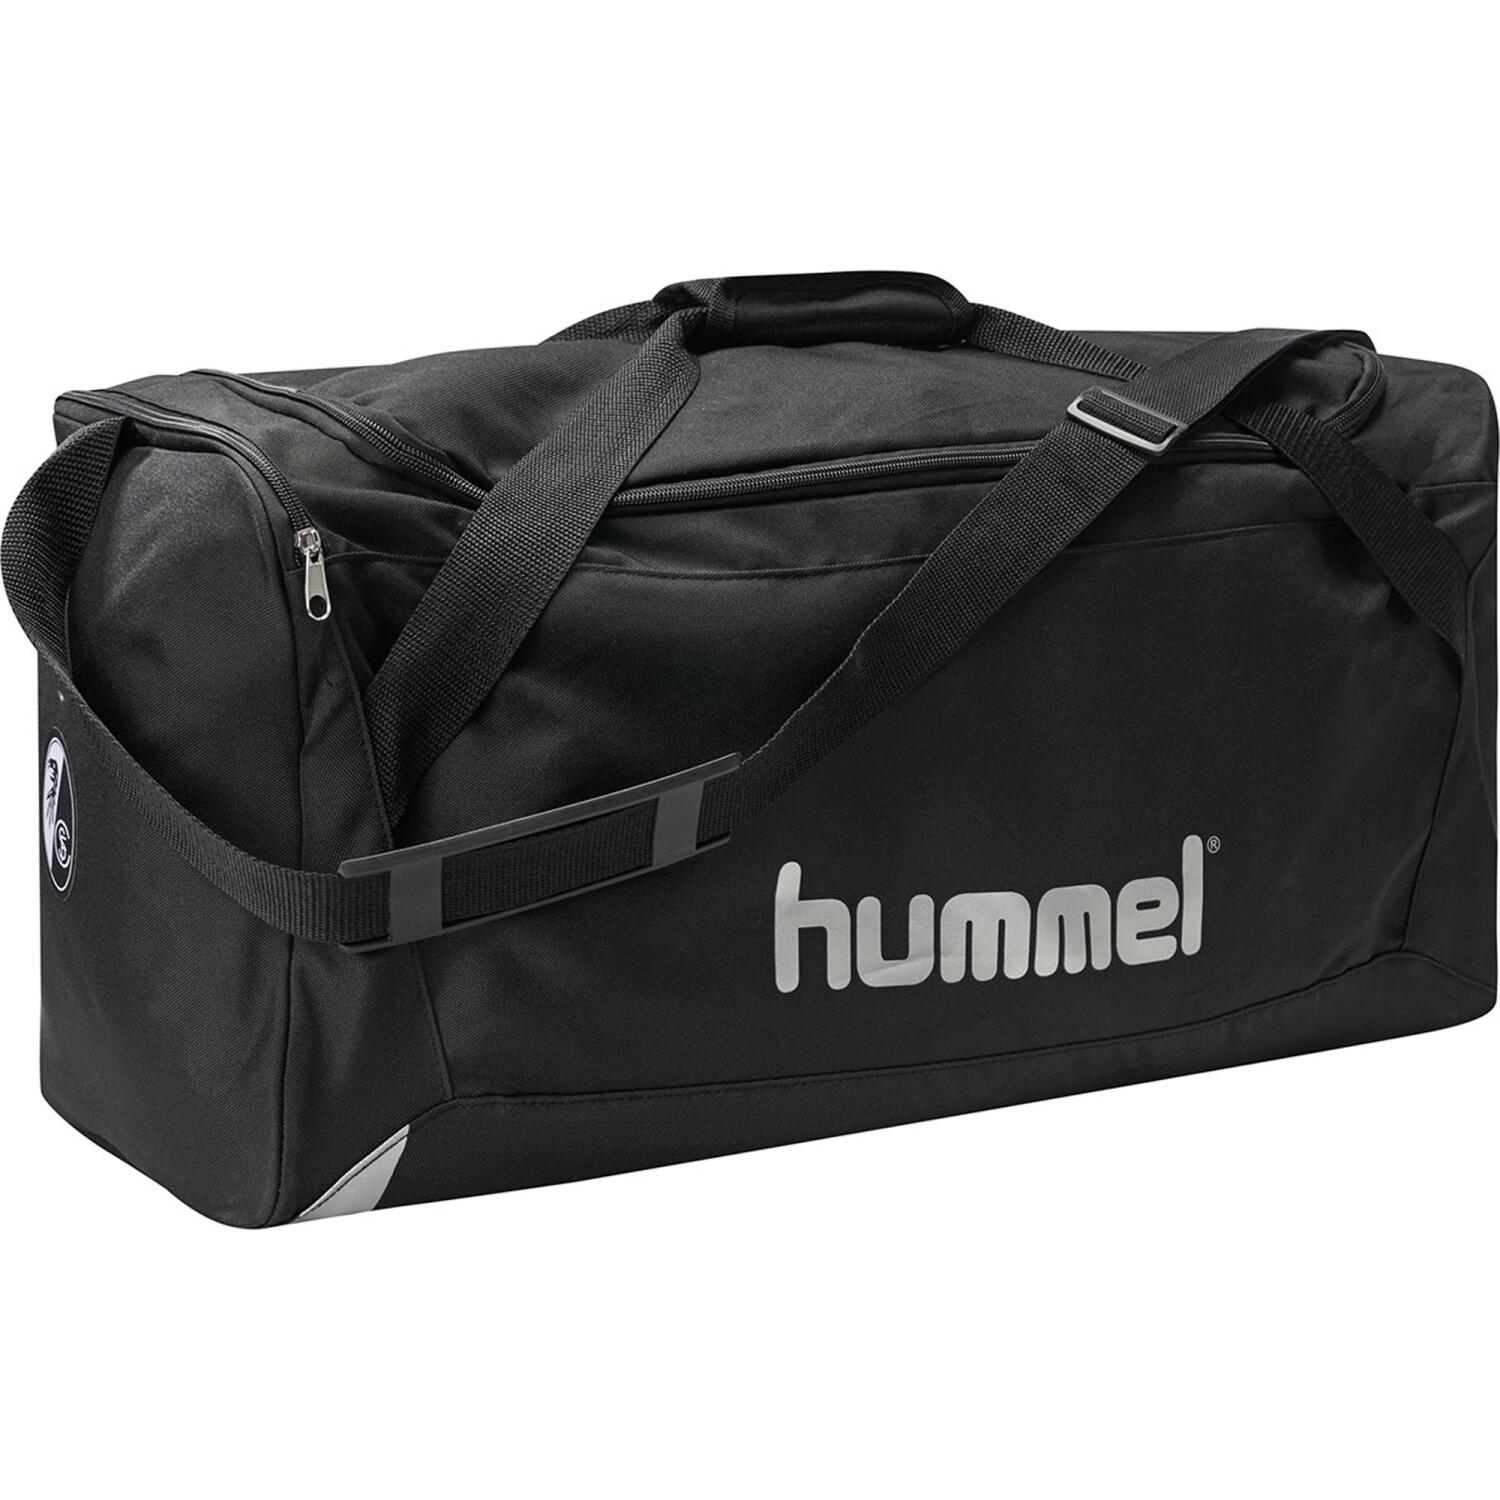 hummel-core-sports-bag-farbe-2001-black-